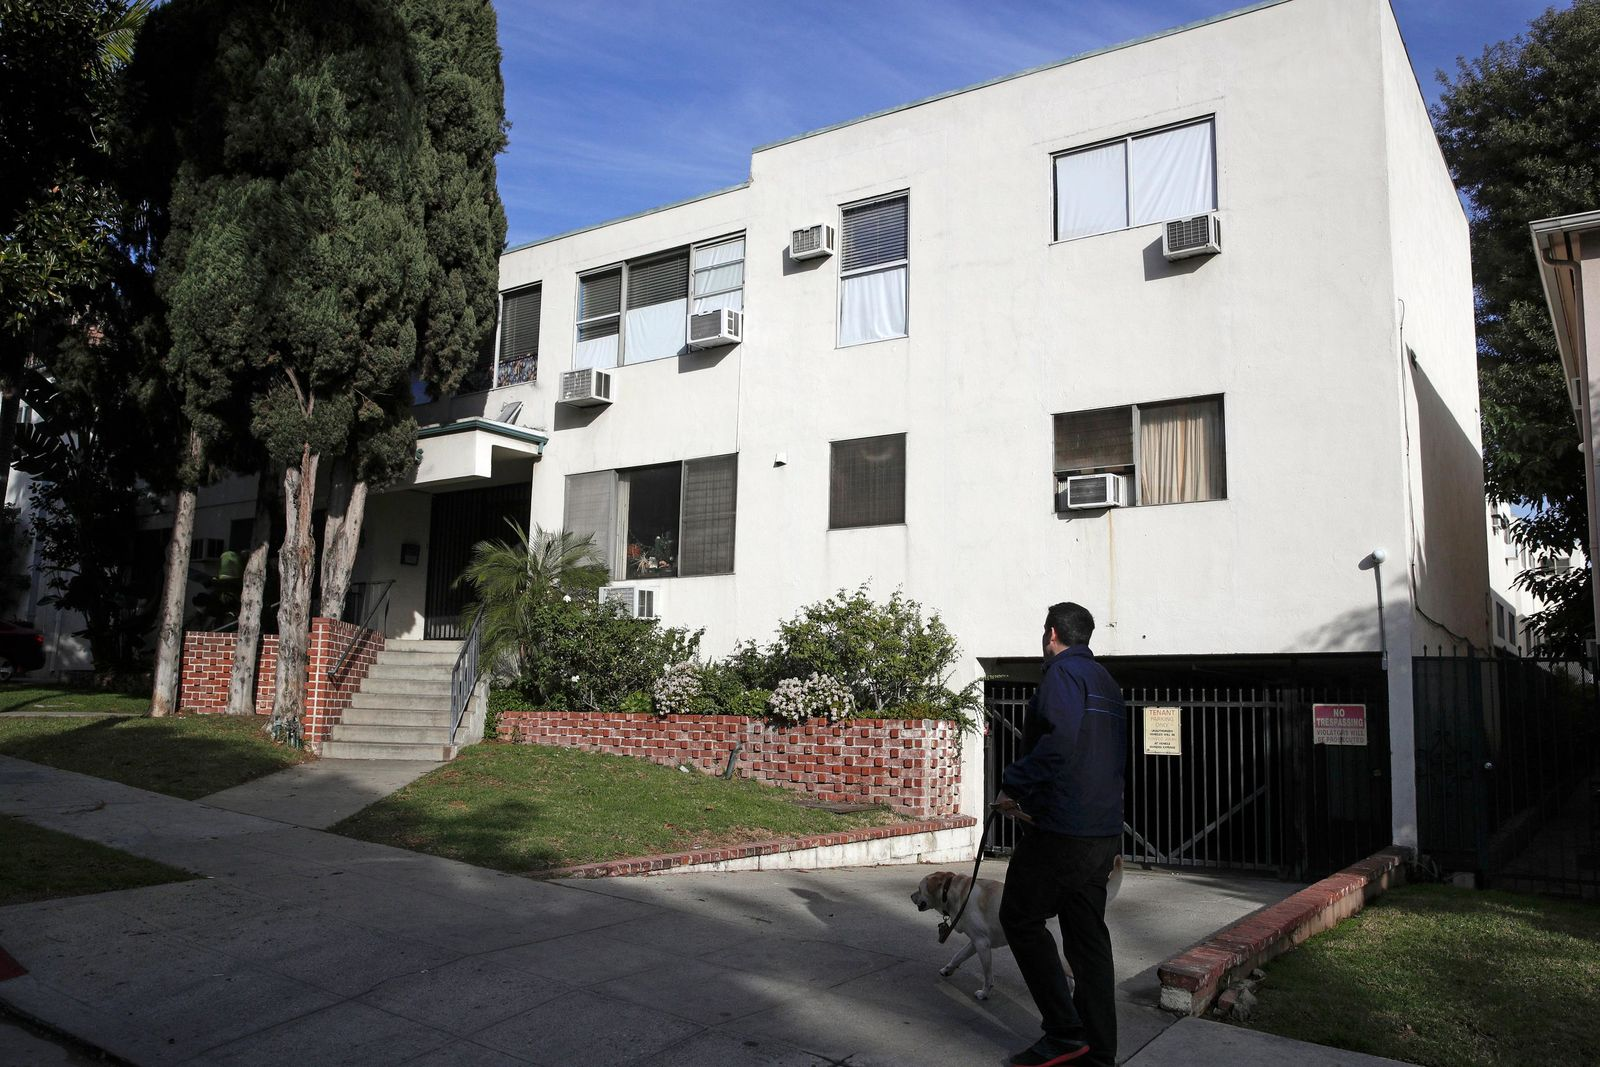 FILE - This Jan. 8, 2019 file photo shows the building housing the apartment of Ed Buck in West Hollywood, Calif., following the death of a man the previous day. (AP Photo/Jae C. Hong, File)